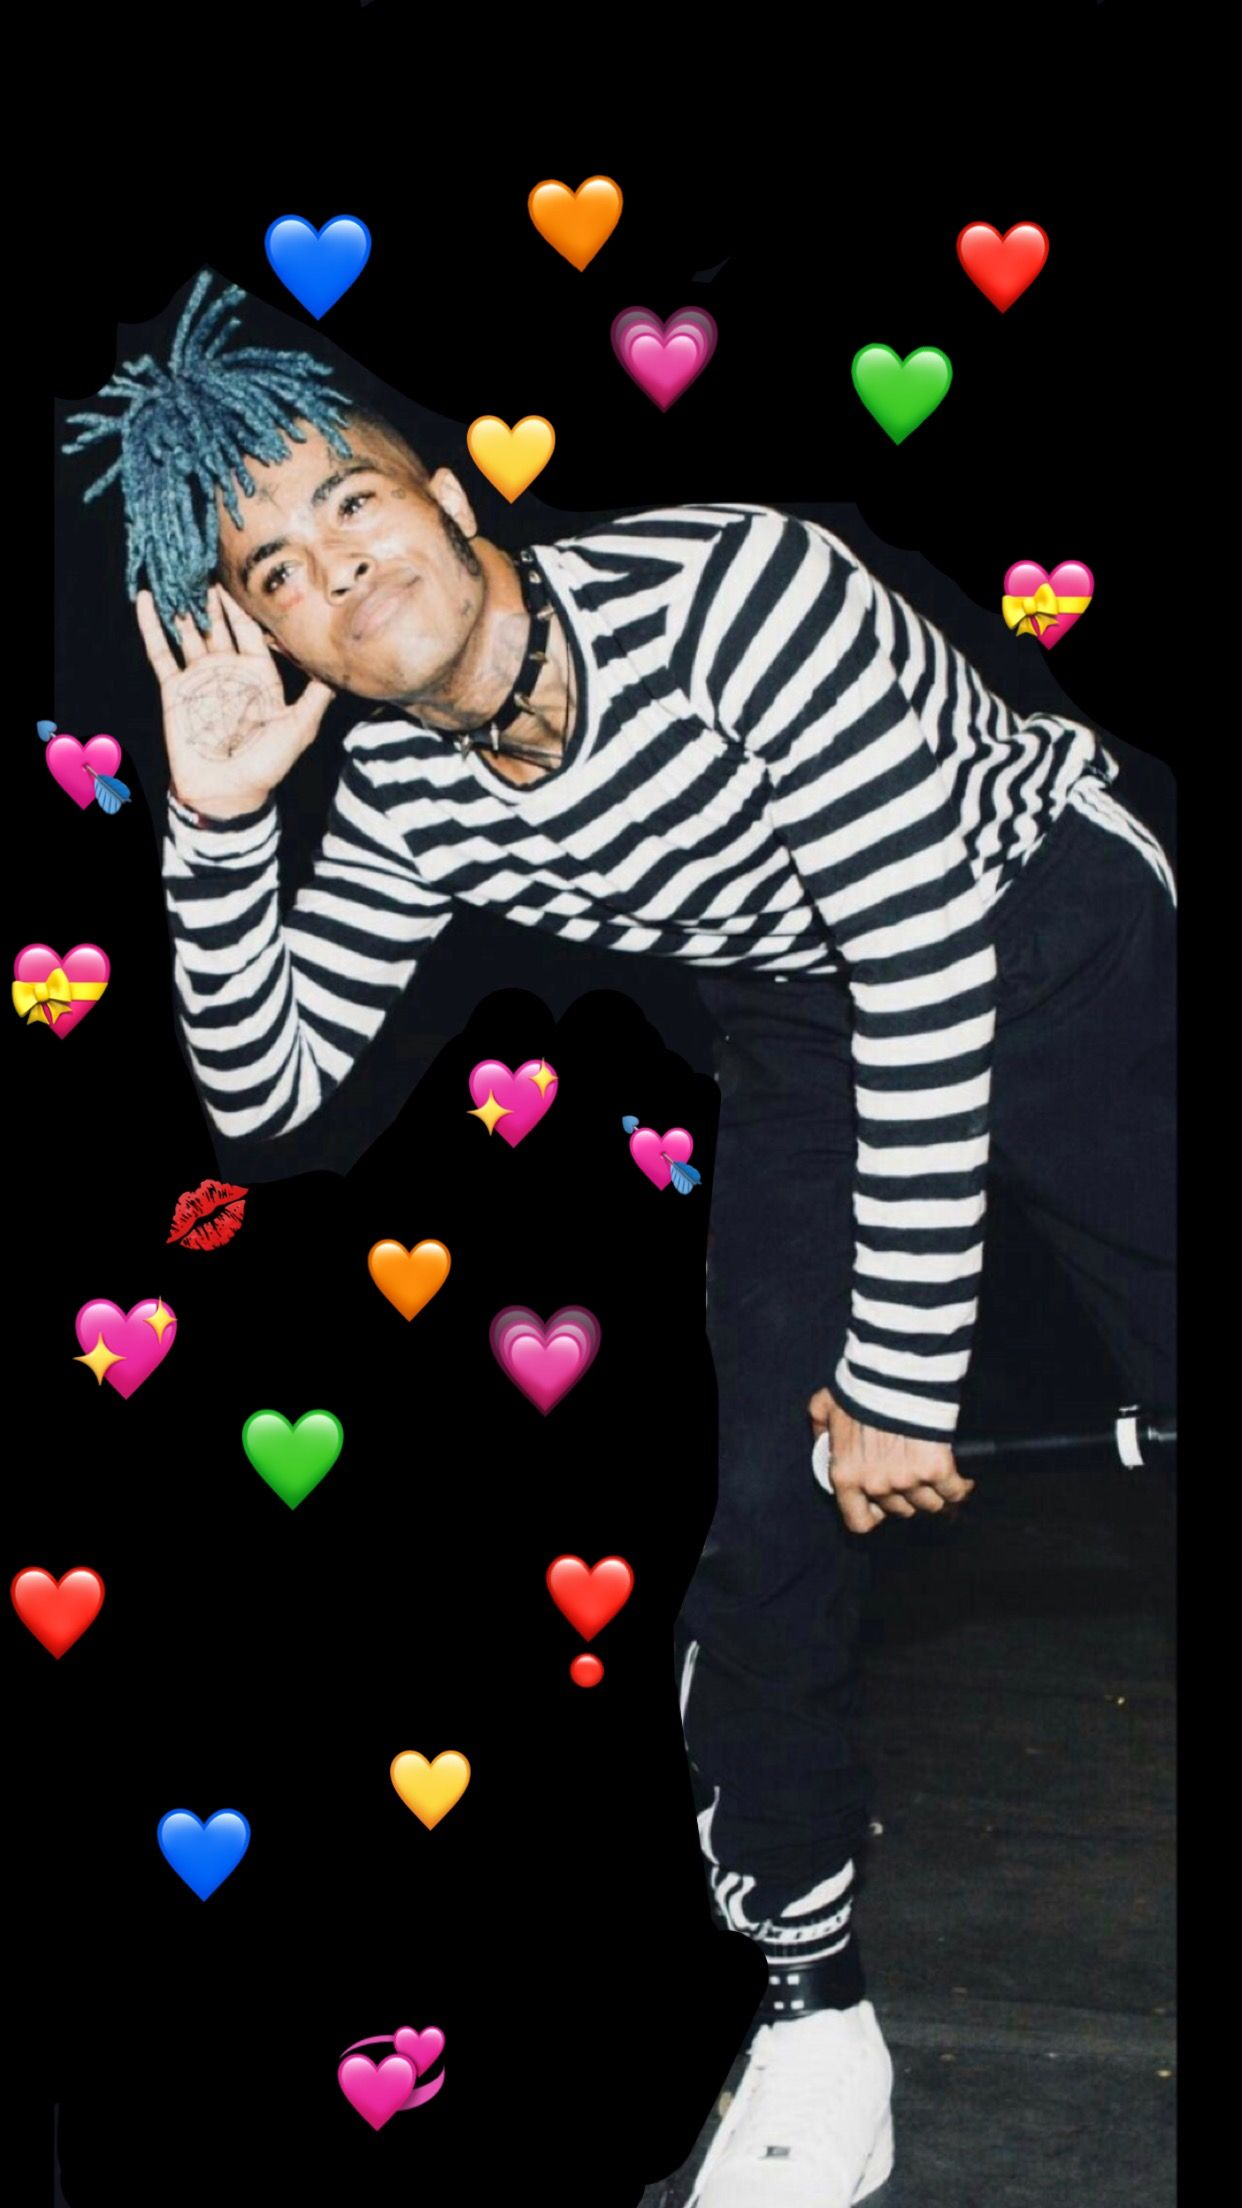 Forever in our hearts xxxtentacion photoedits sad